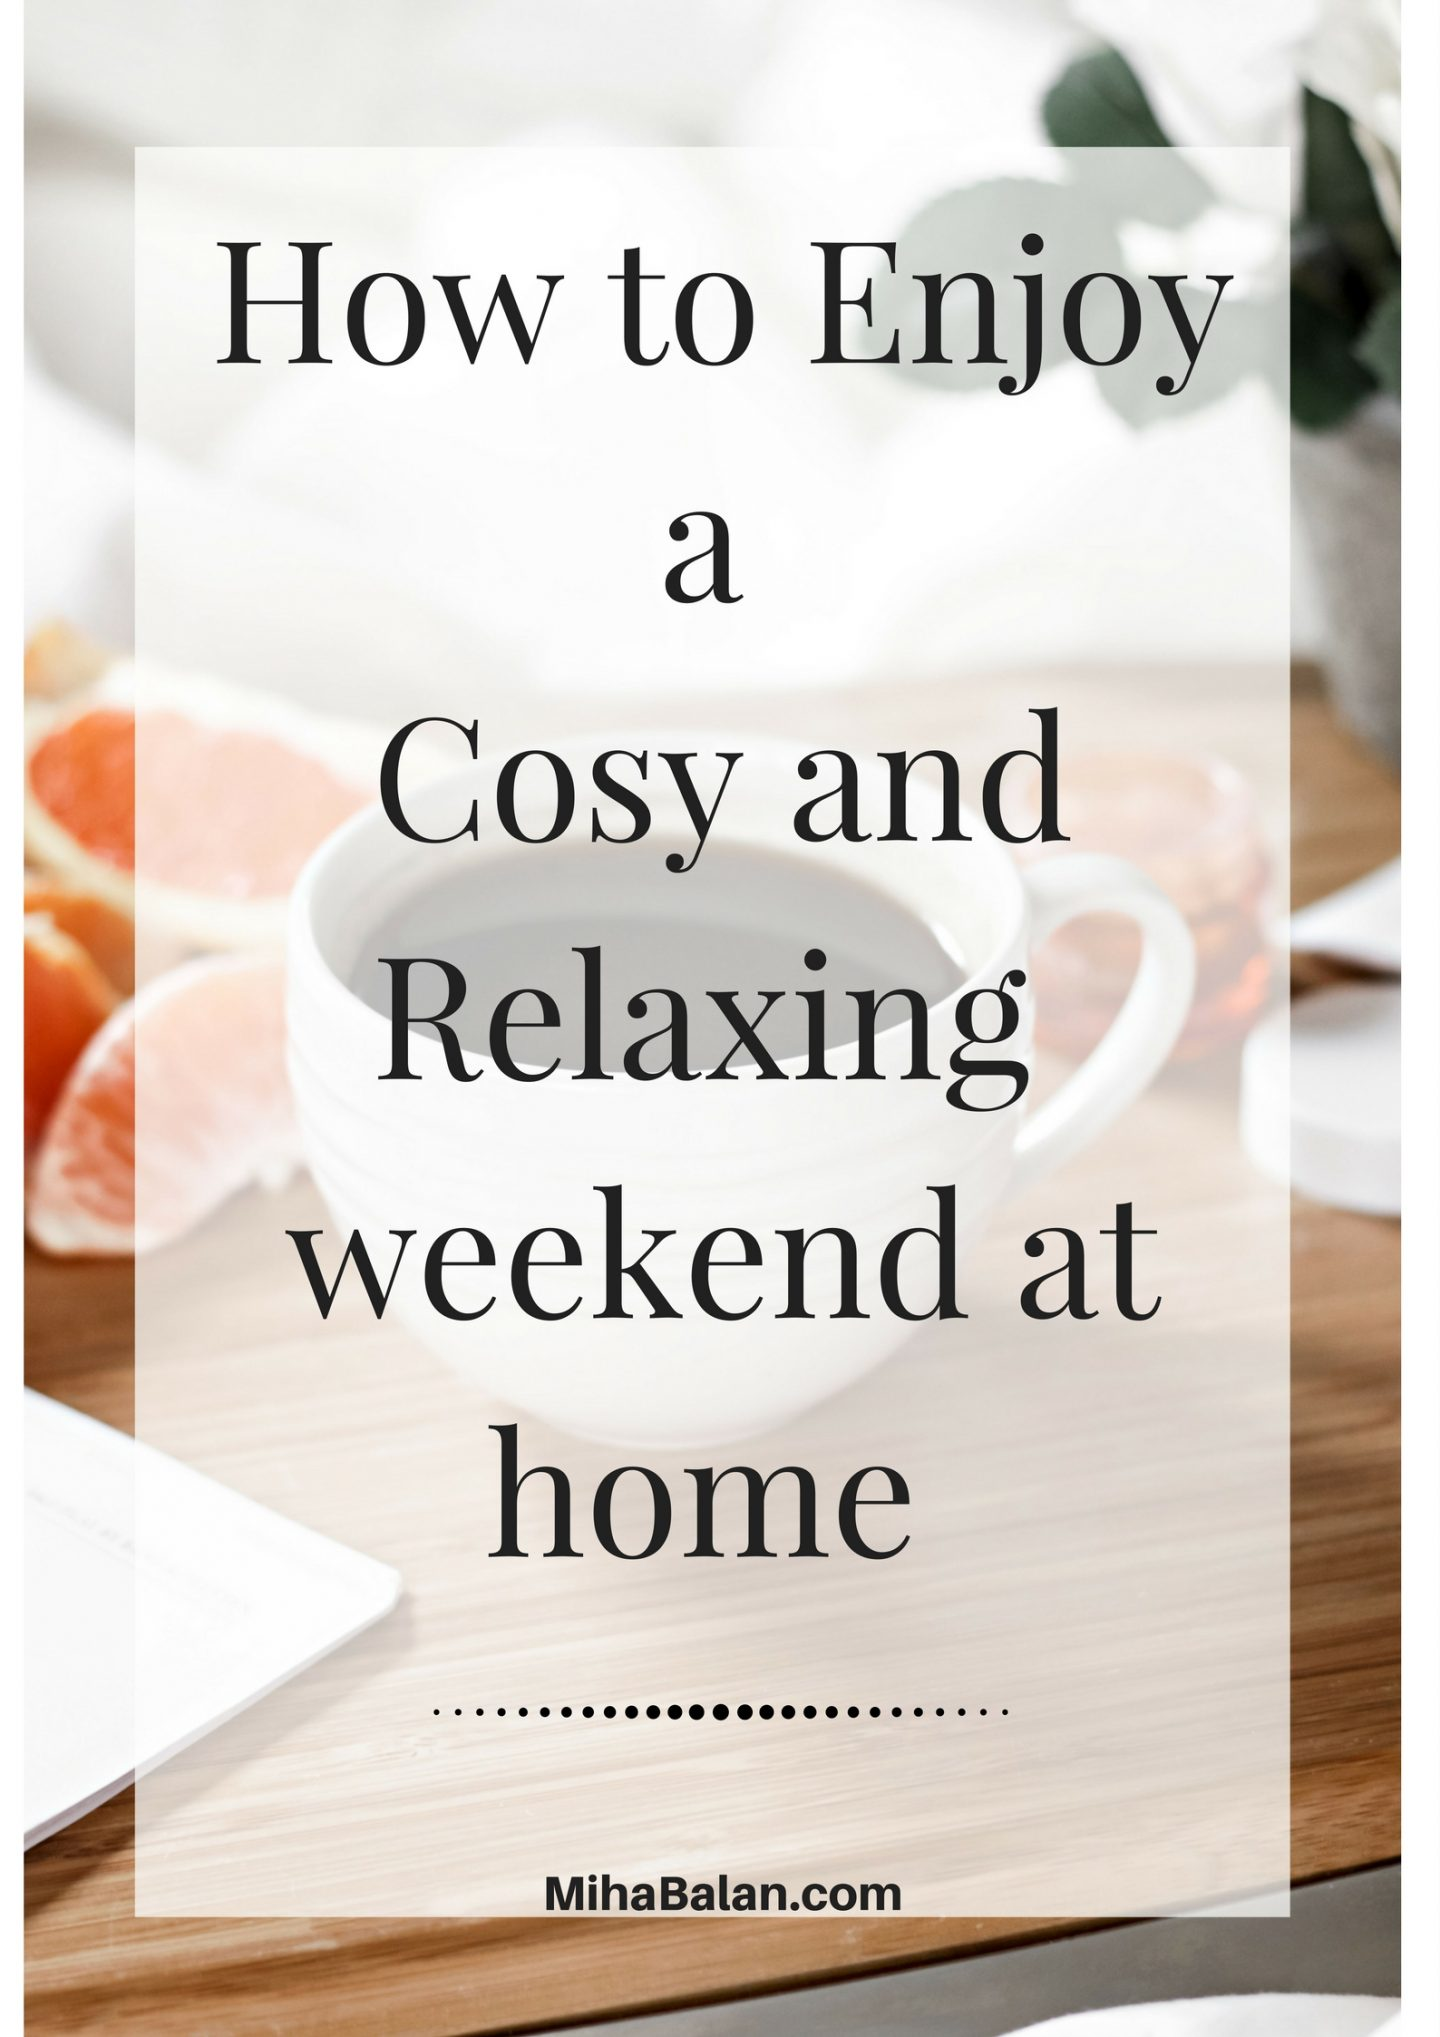 How to enjoya cosy and relaxing weekend at home